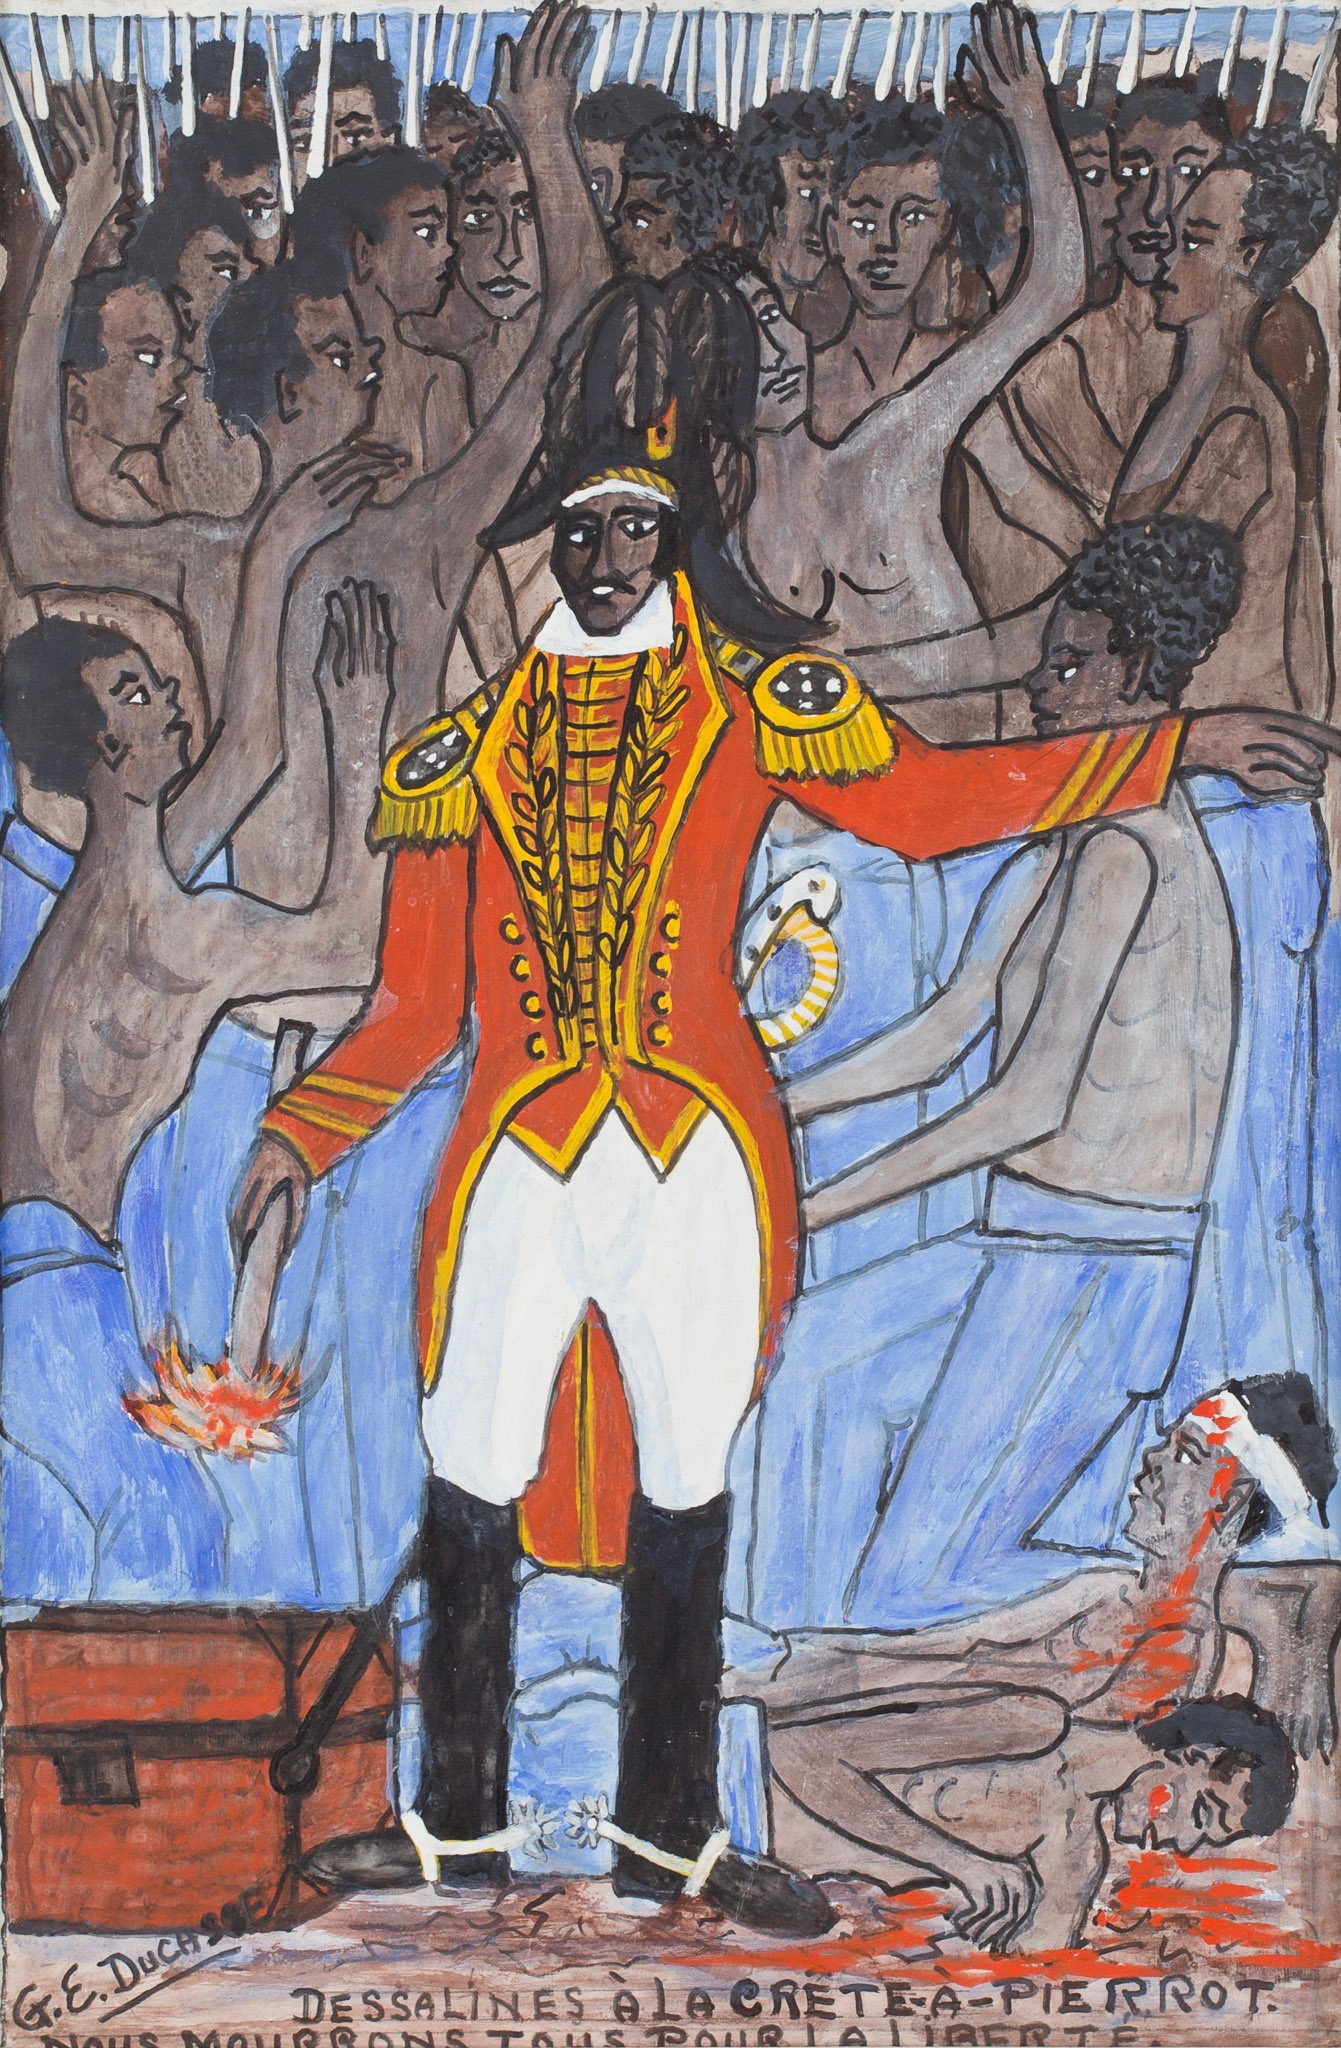 Dessalines At La Crete-A-Pierrot.  We Will All Die For Freedom, 1974